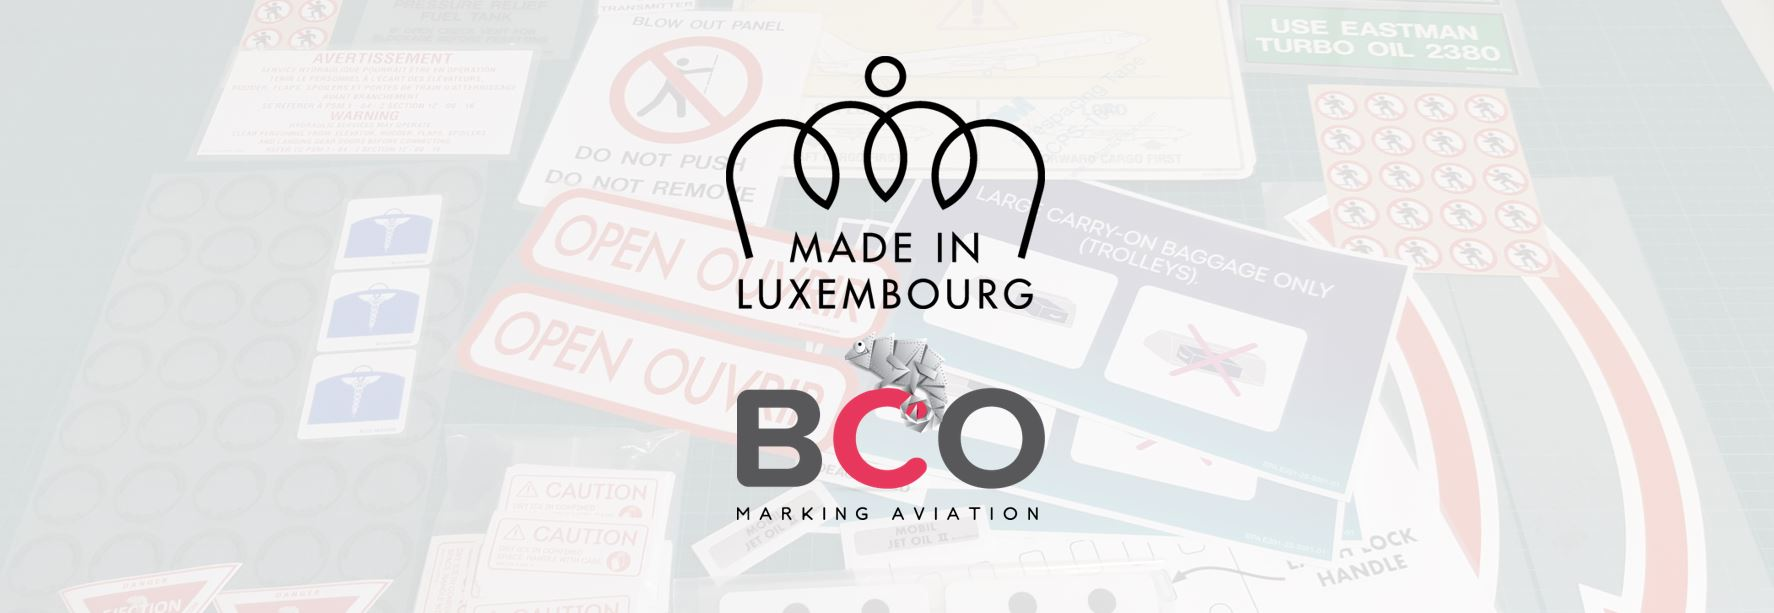 """Illustration for: BCO Aviation obtains """"Made in Luxembourg"""" label"""